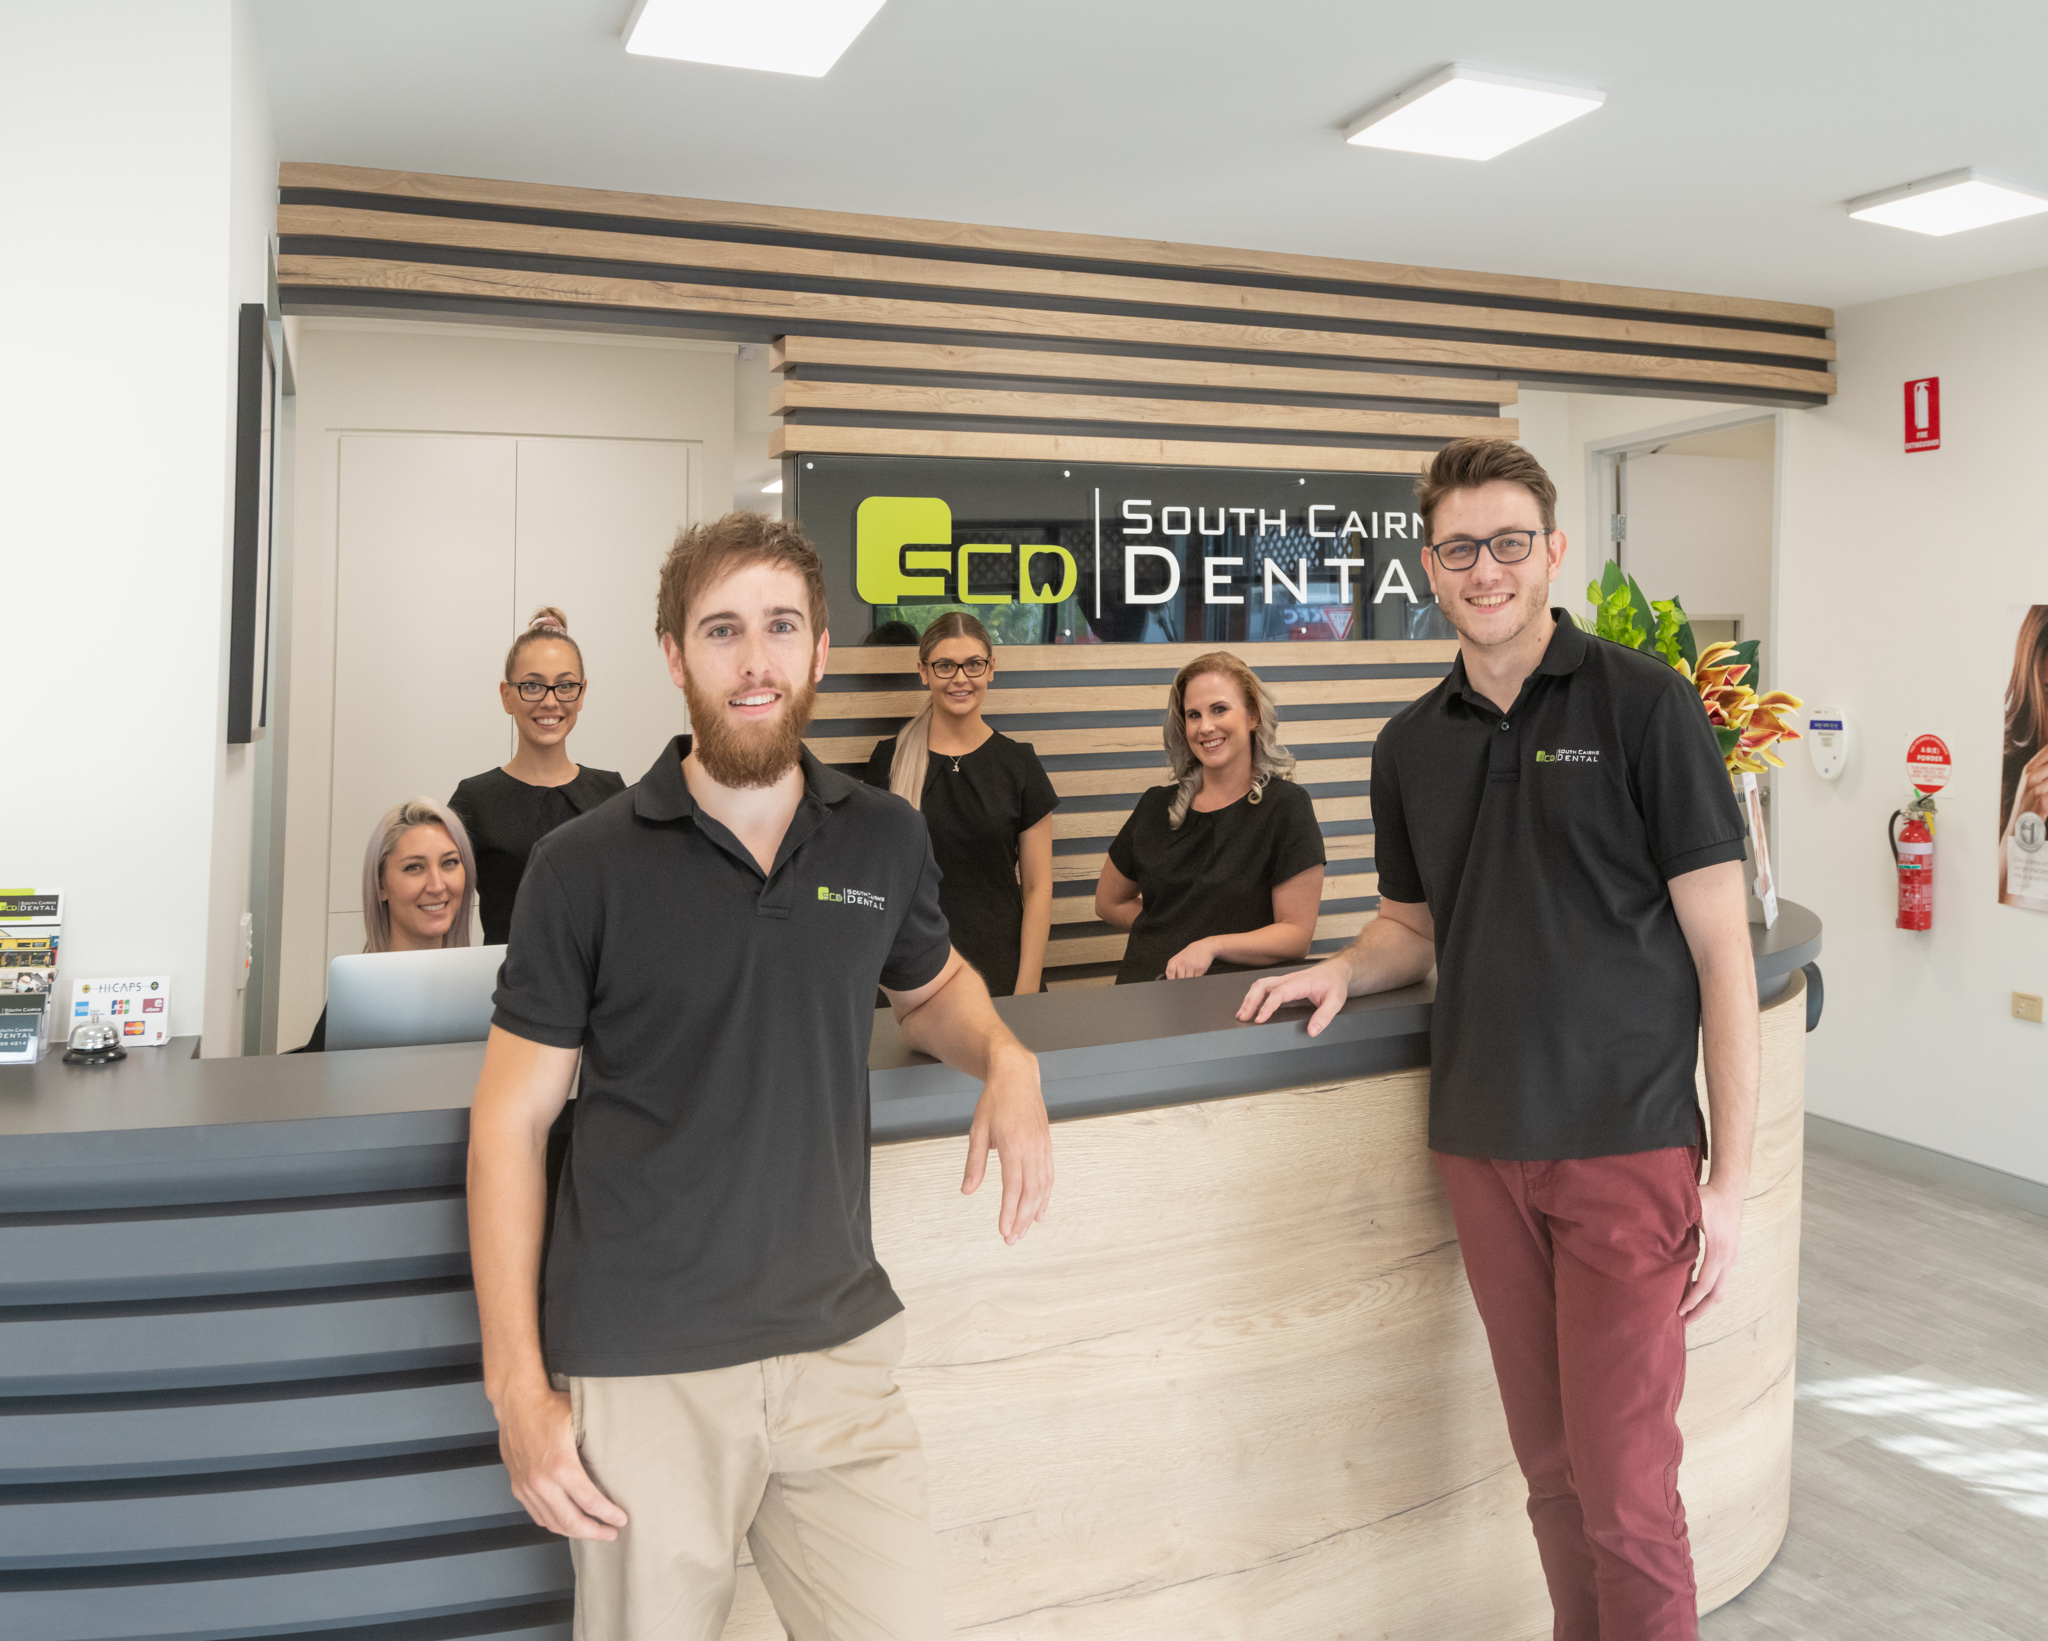 South Cairns Dental